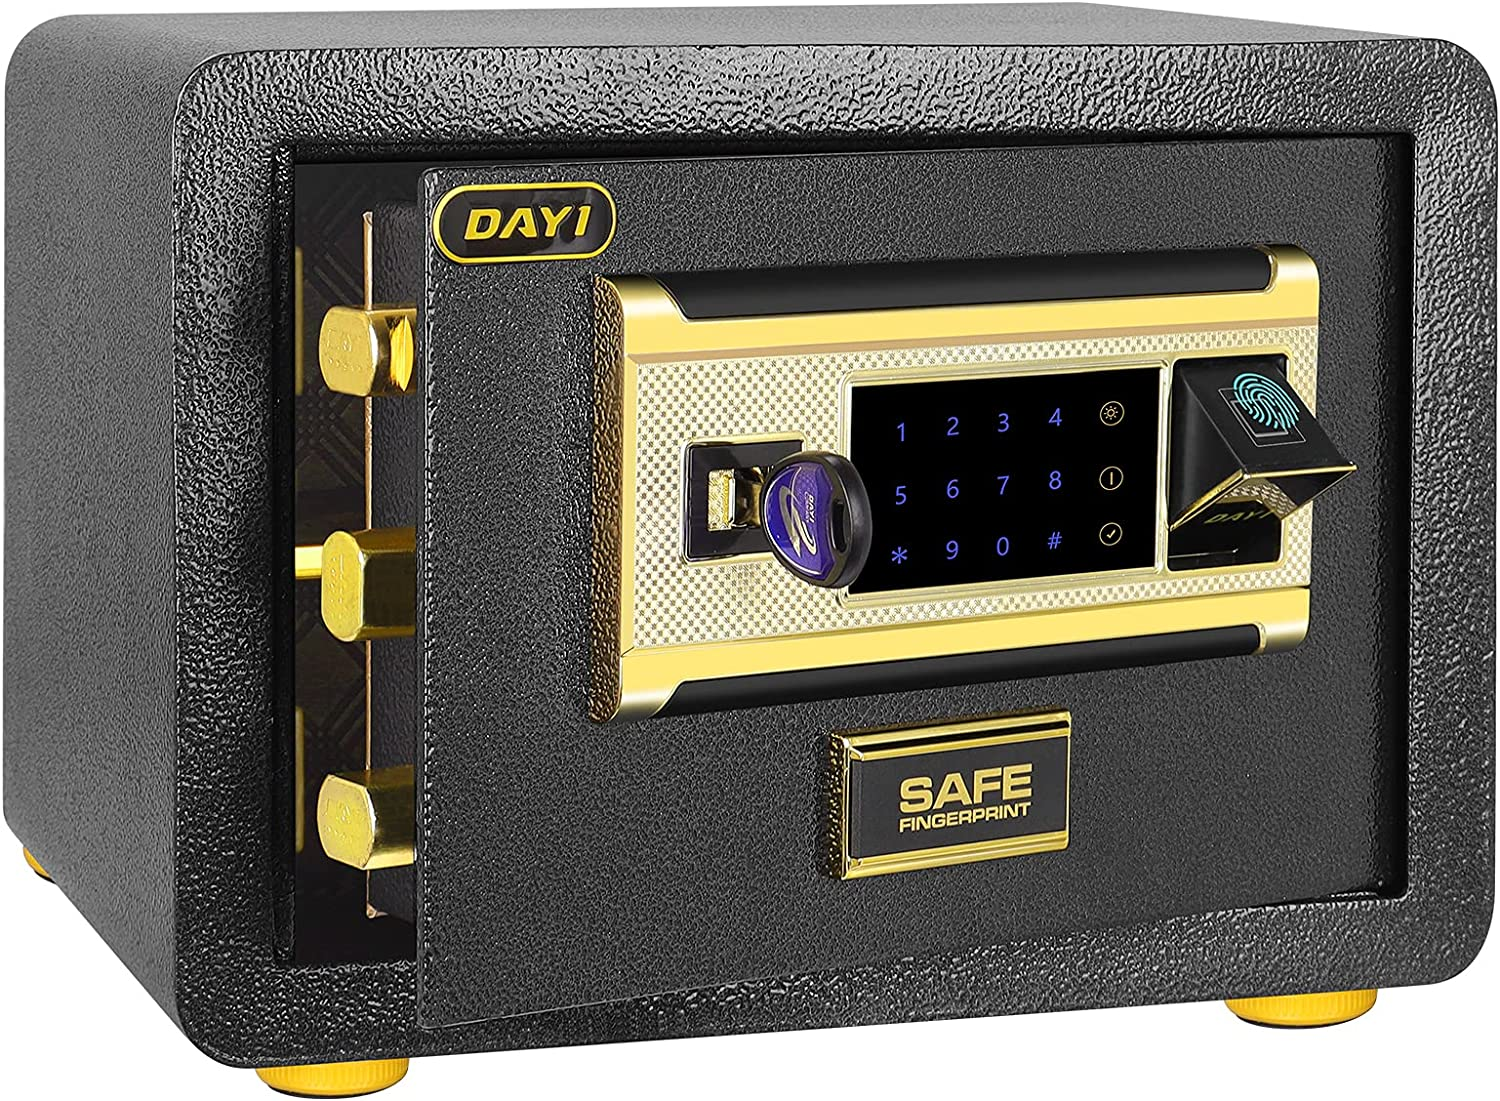 Safe Box, Fingerprint Safe Digital Security Safe 14 x 10 x 10 inches Home Safe with Induction Light for Storing Jewelry/Gun/Cash/Important Documents (Gold Lock Bolt)